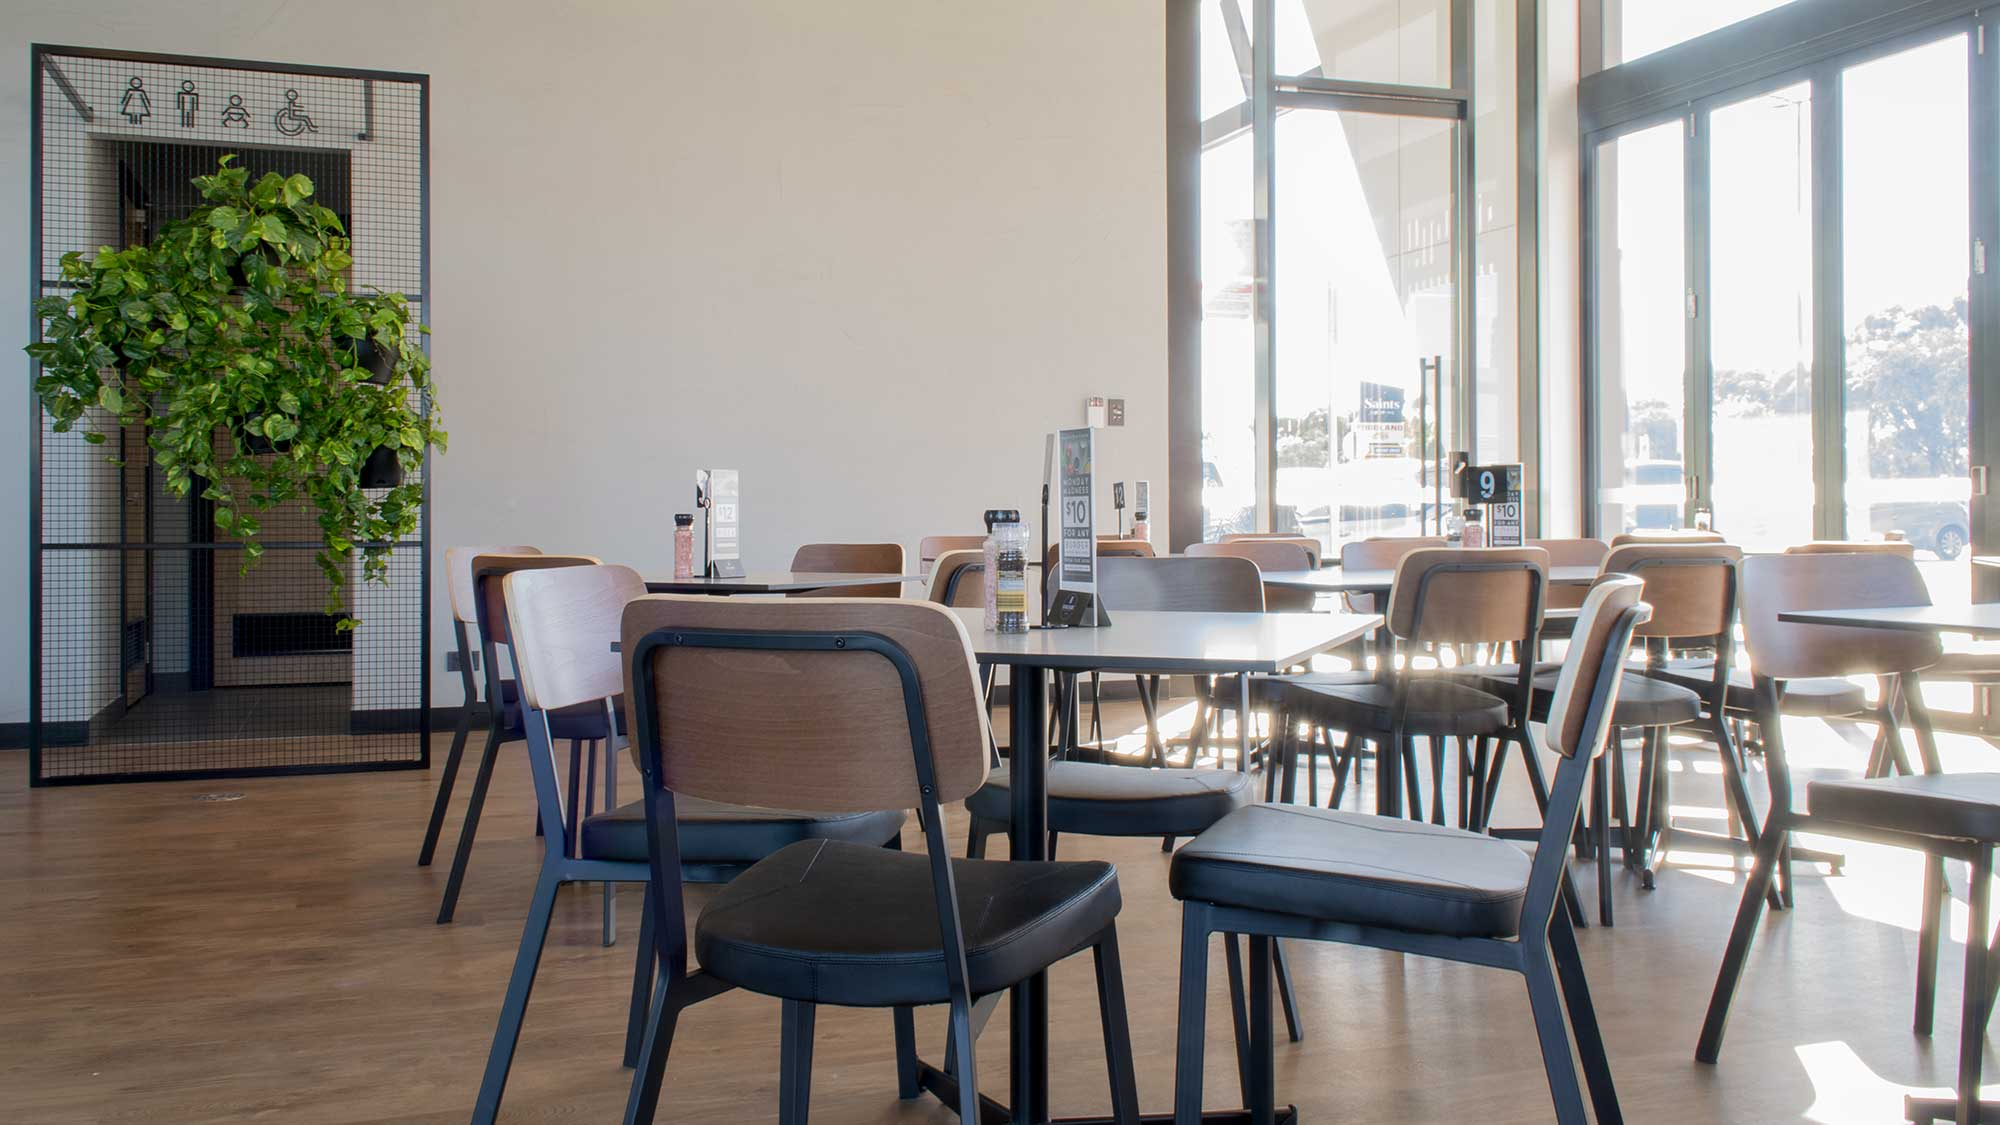 Caprice Chairs, Compact Laminate Table Tops and Davido Bases